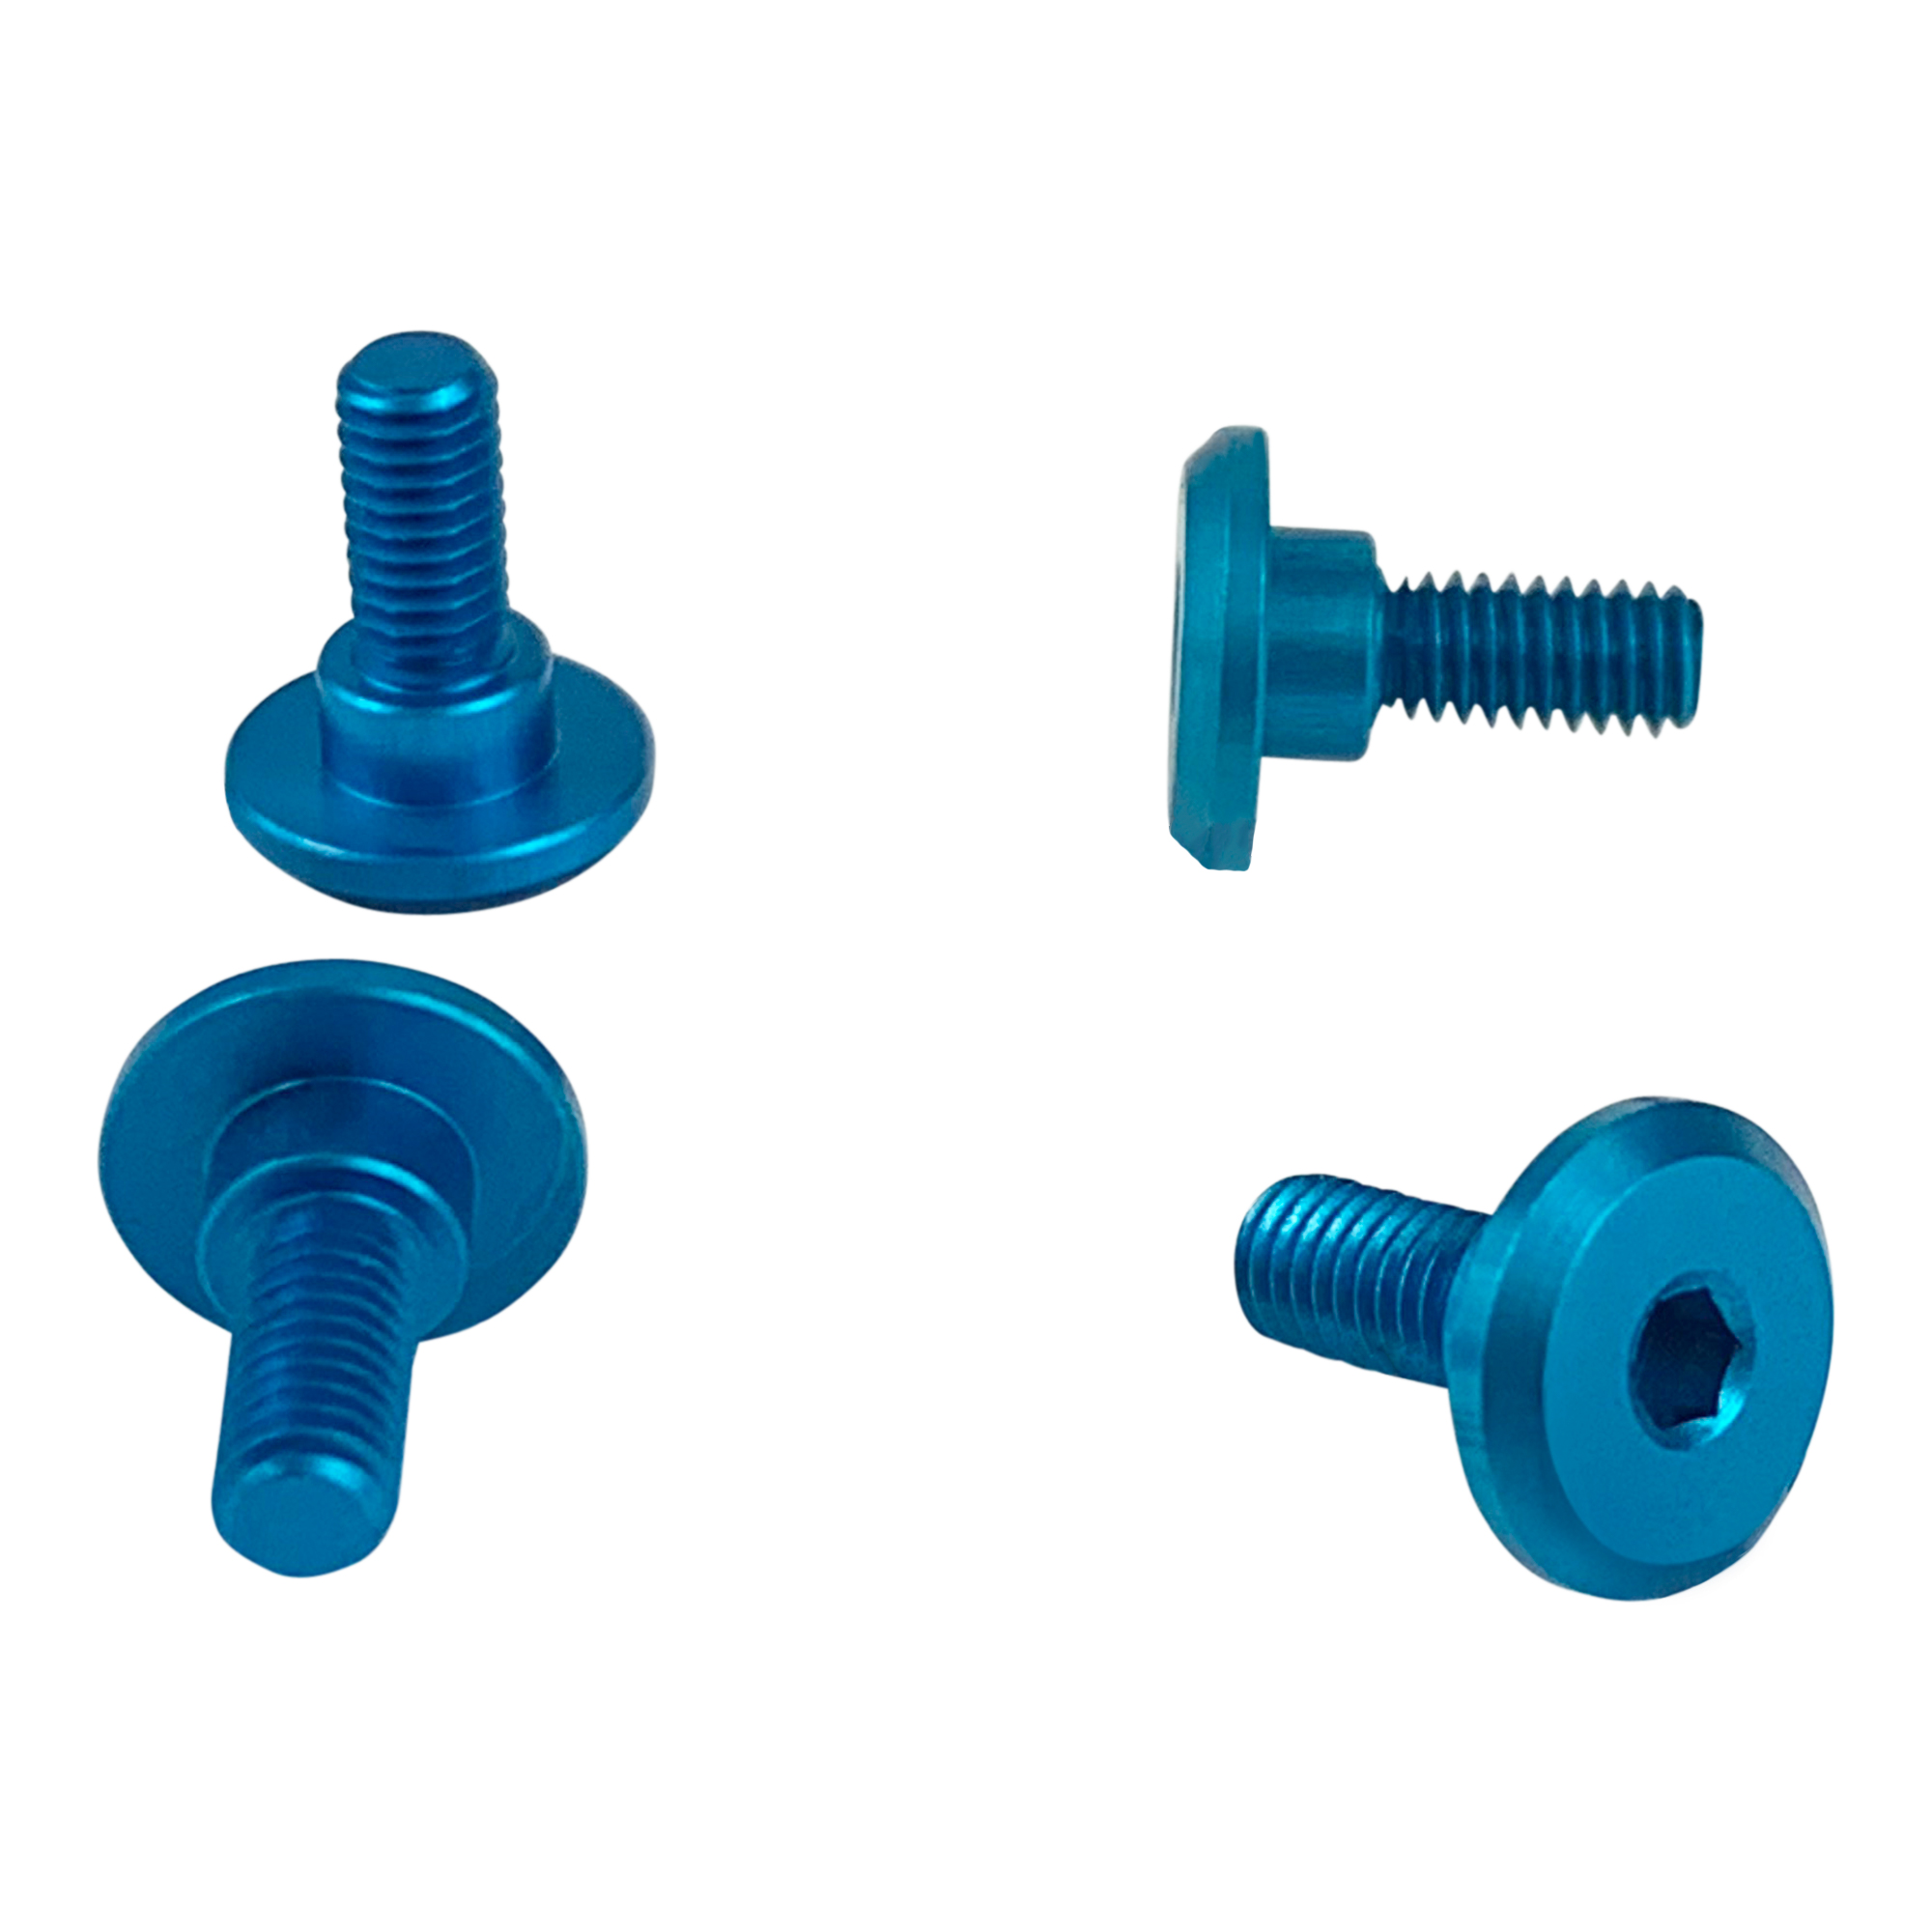 1UP Bright Blue – 6mm Thread Servo Screws